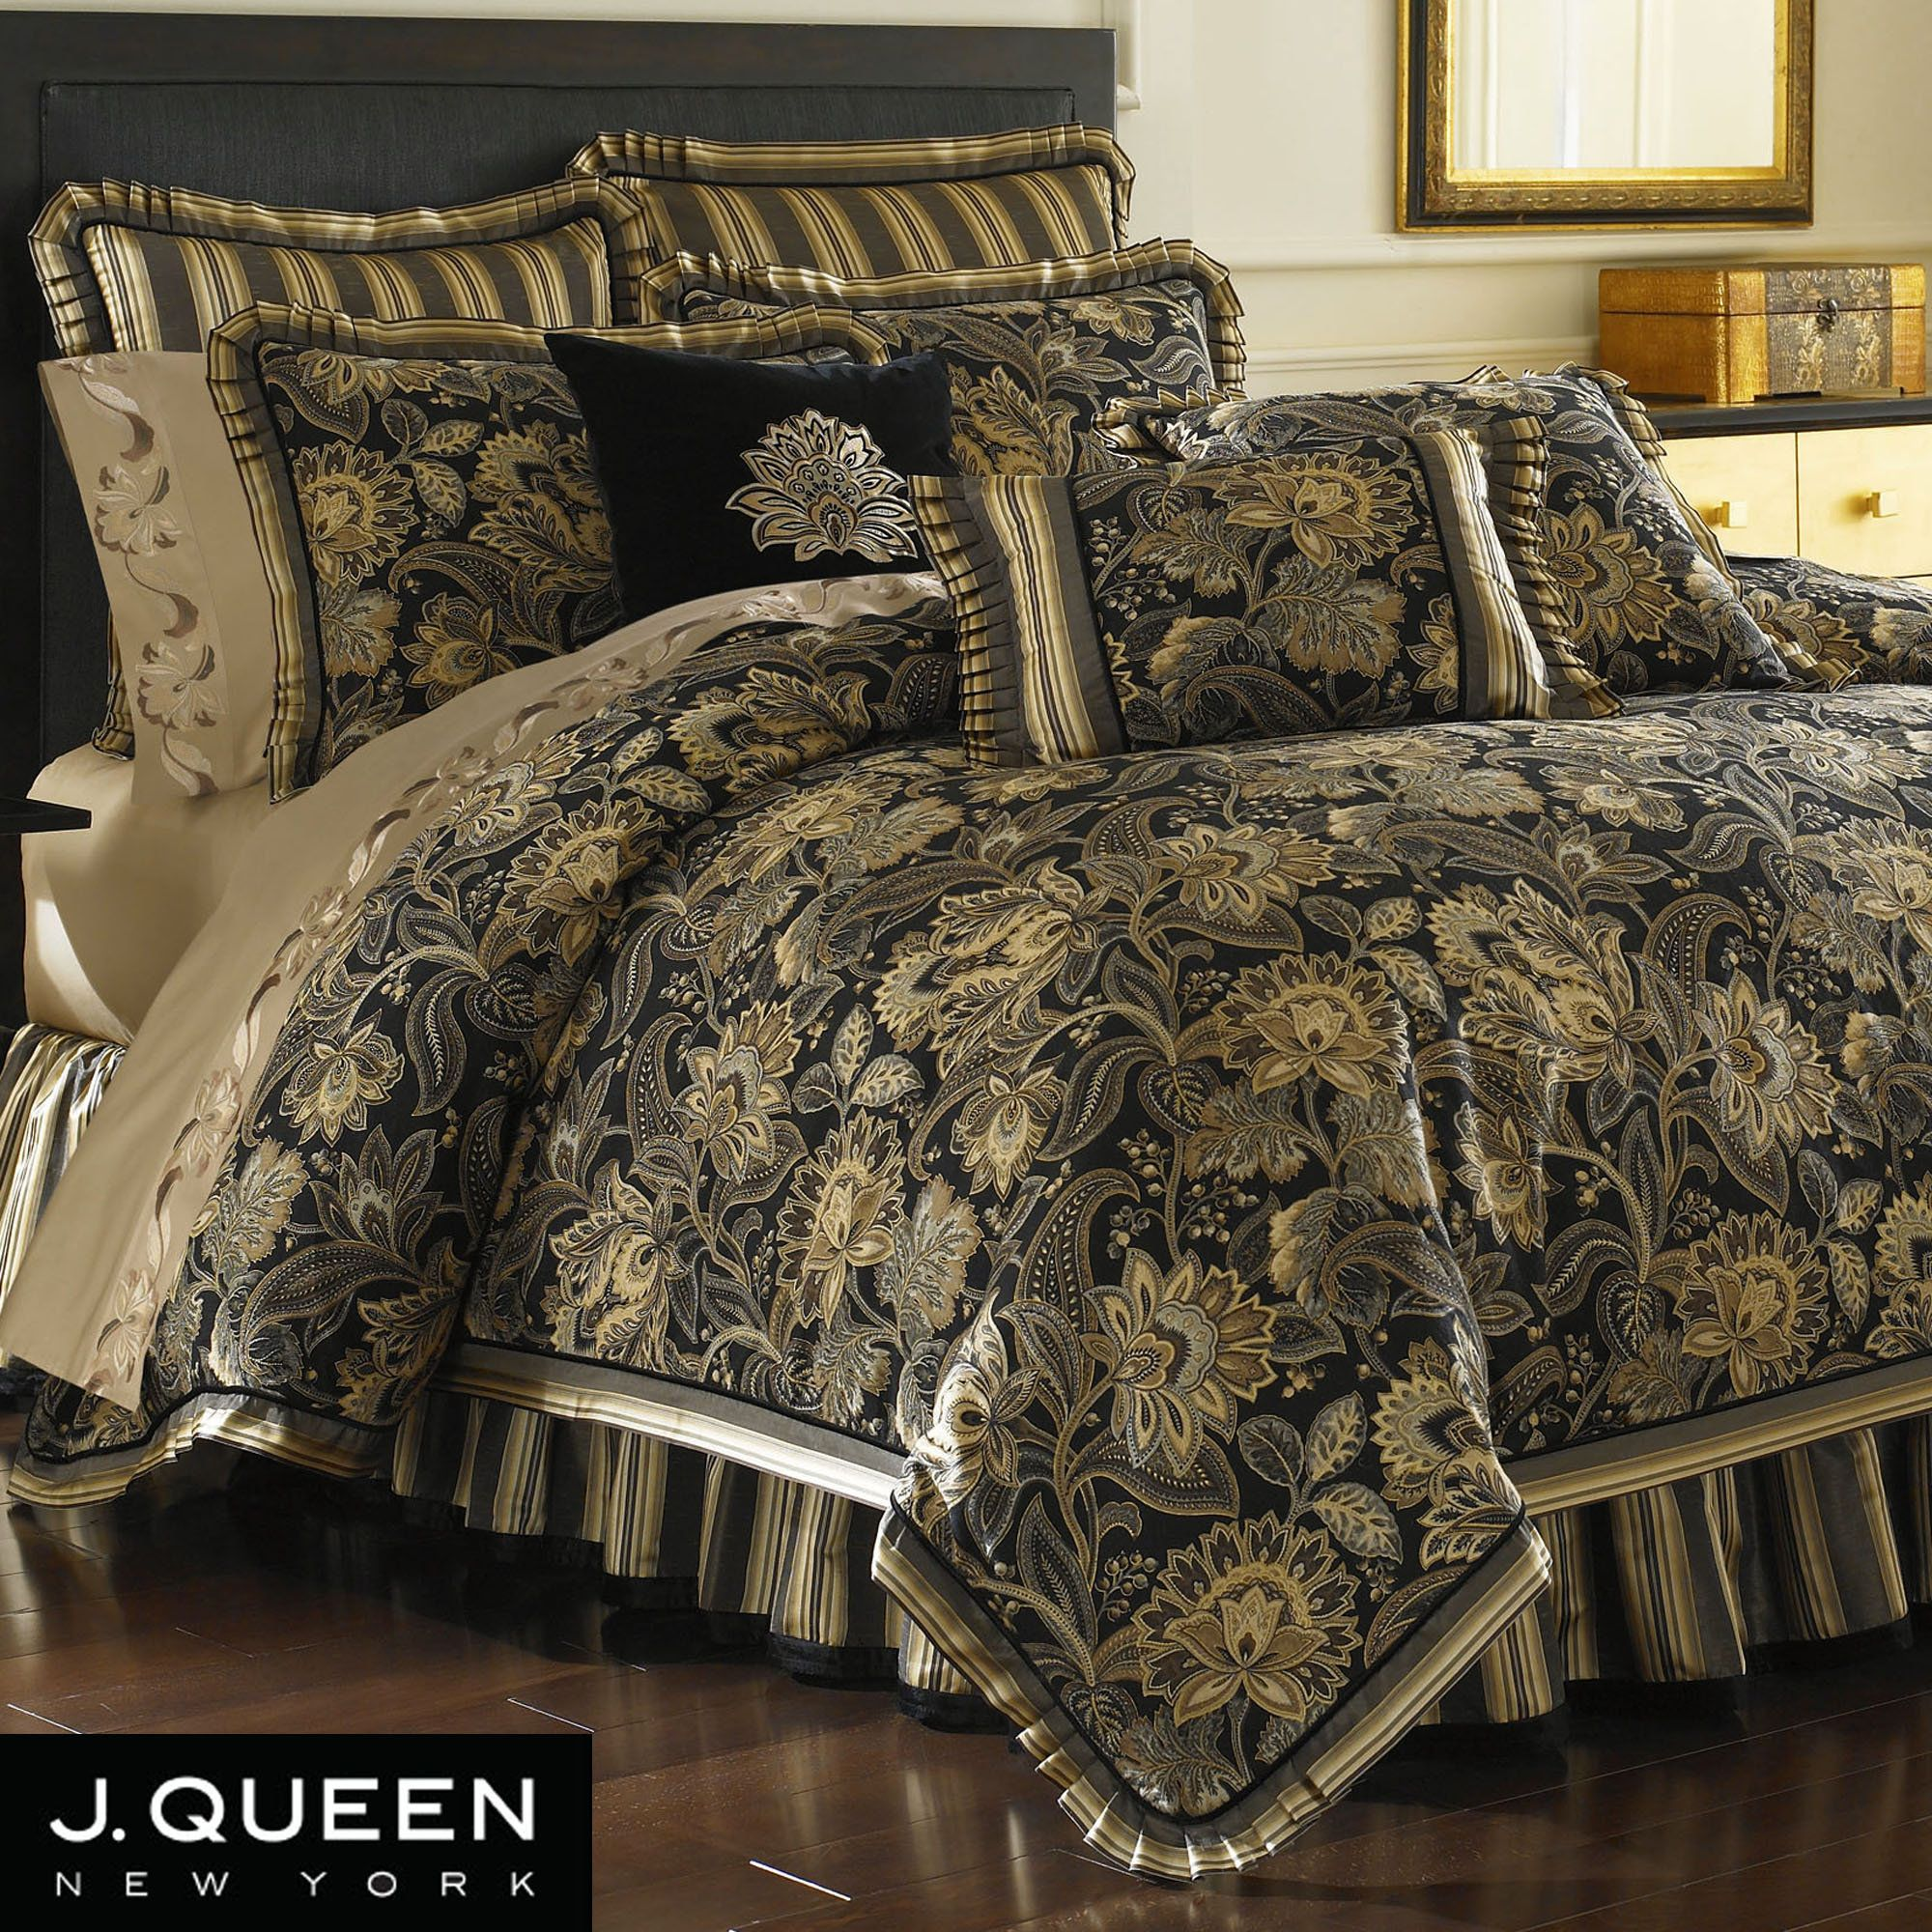 Brown bedding sets queen - Valdosta Jacobean Comforter Bedding By J Queen New York